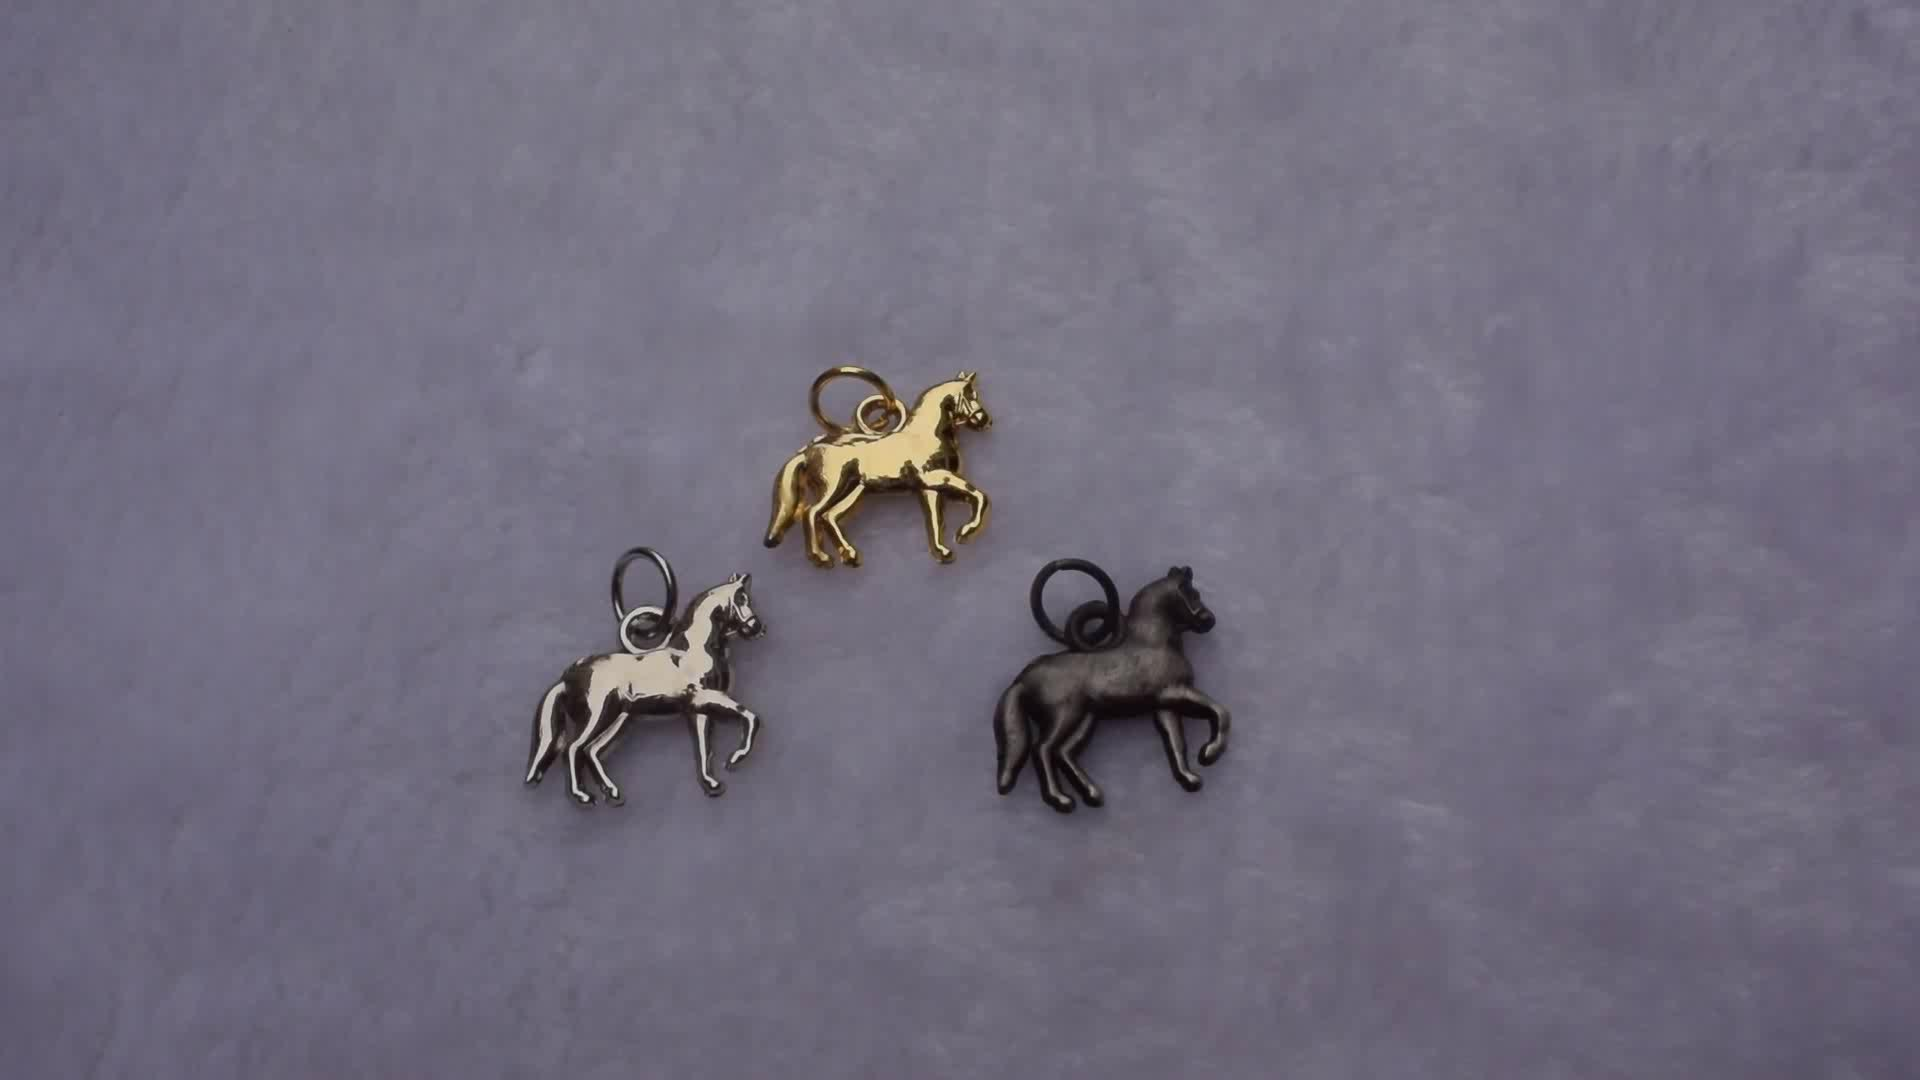 3D Design Mini horse Shape charm Gold Silver Brass Metal horse Jewelry Tags For Bracelets Necklaces